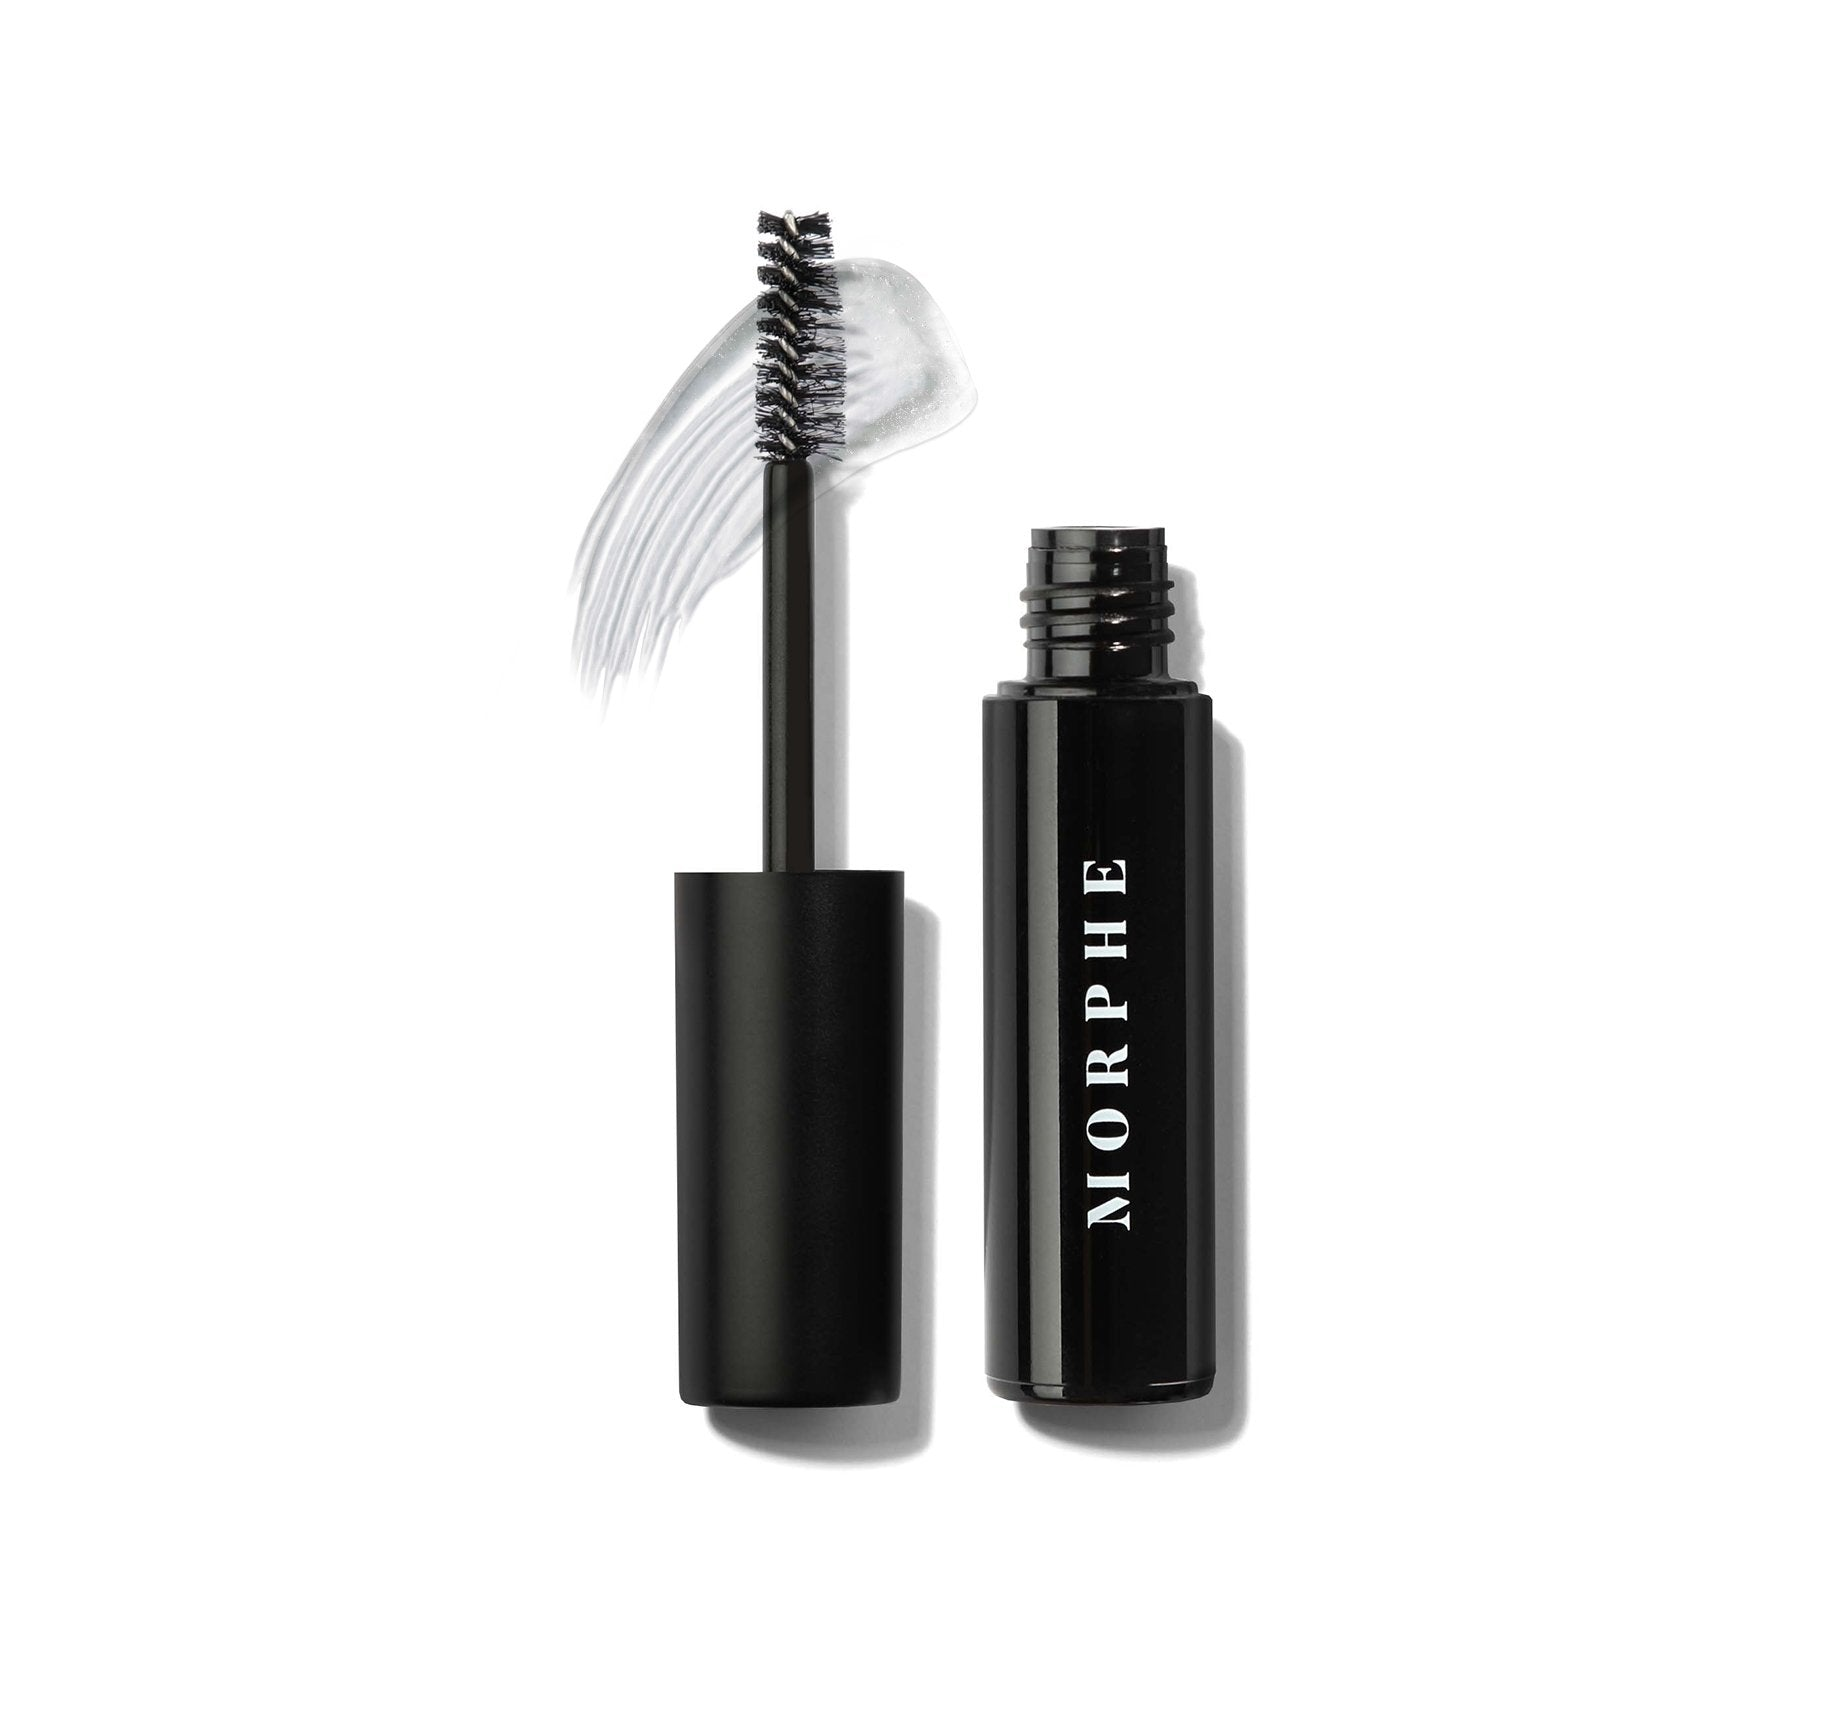 BROW SETTING GEL - TRANSLUCENT, view larger image